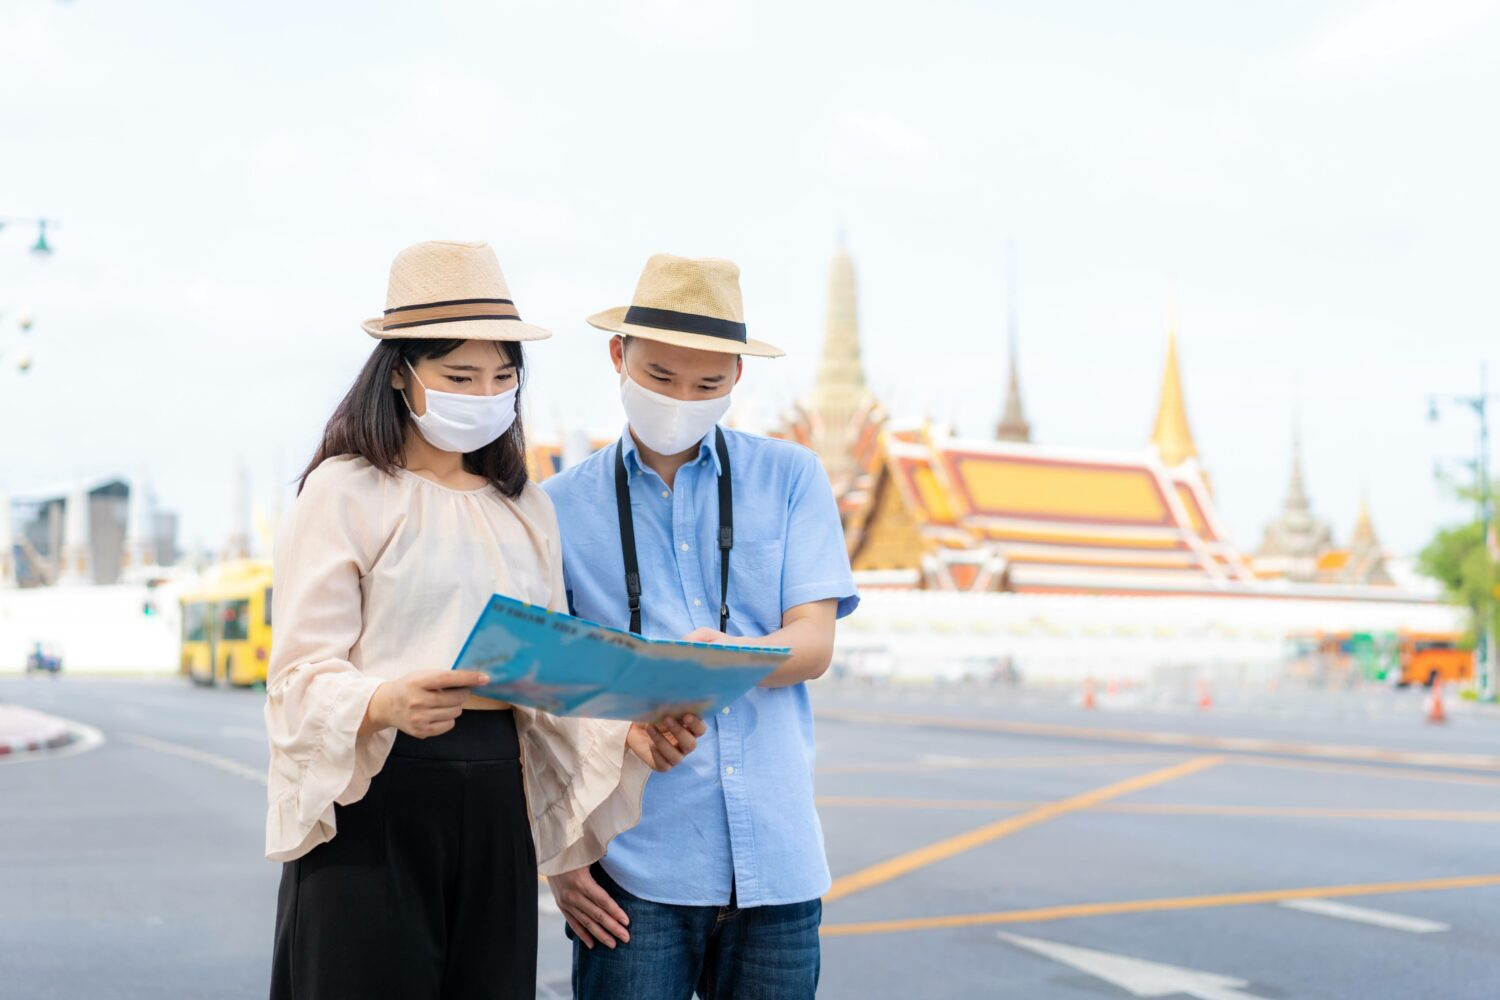 couple sharing a map while masked